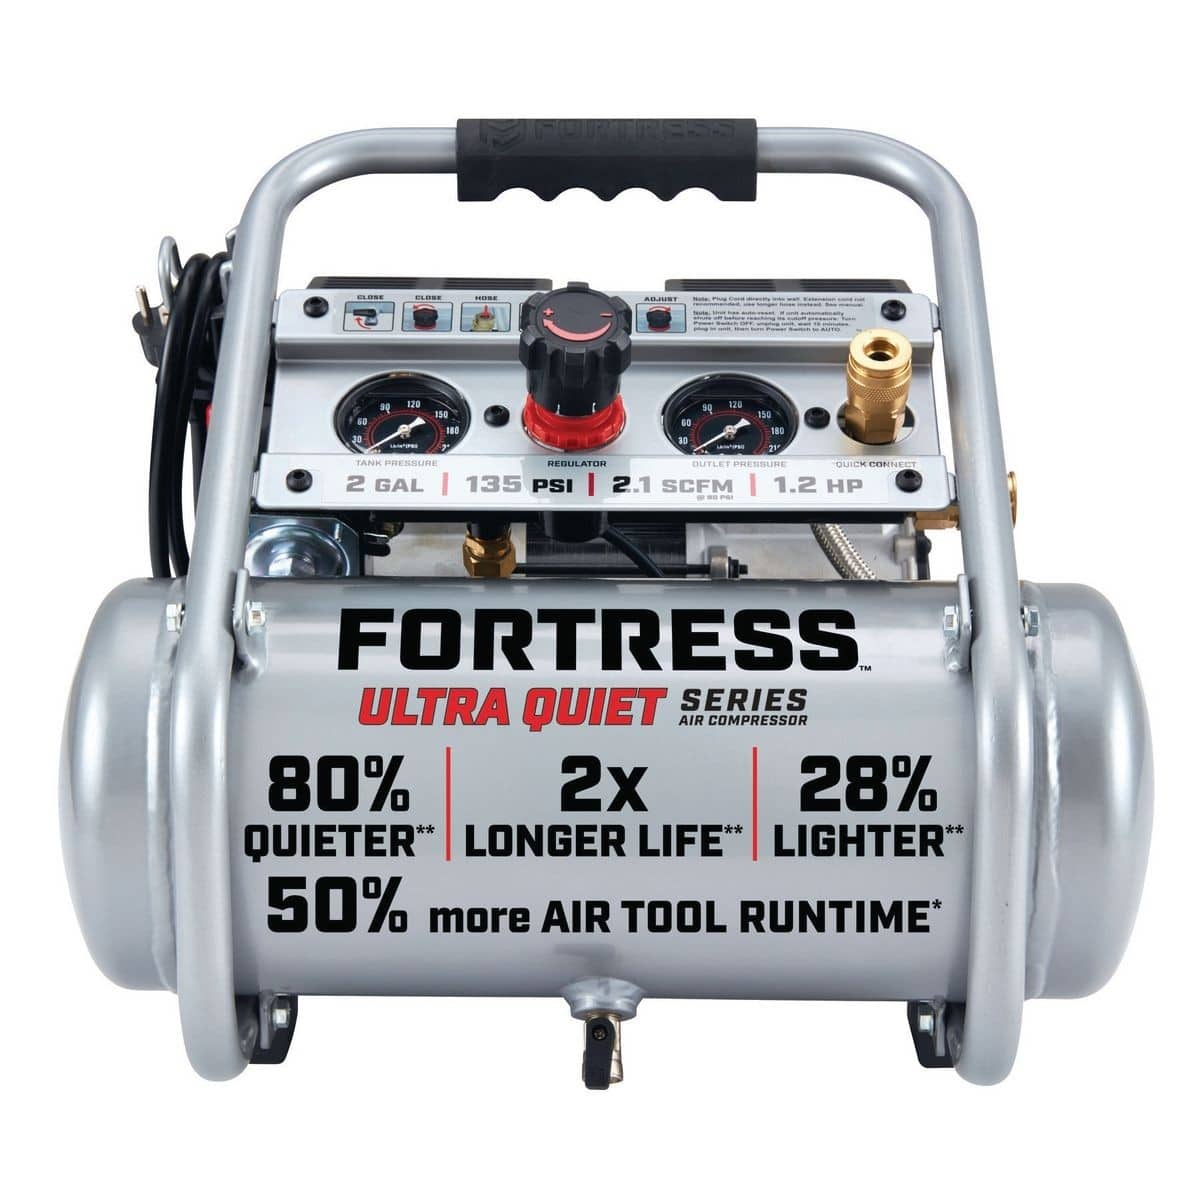 Fortress 2 Gallon 135 PSI Ultra Quiet Hand Carry Jobsite Air Compressor $129